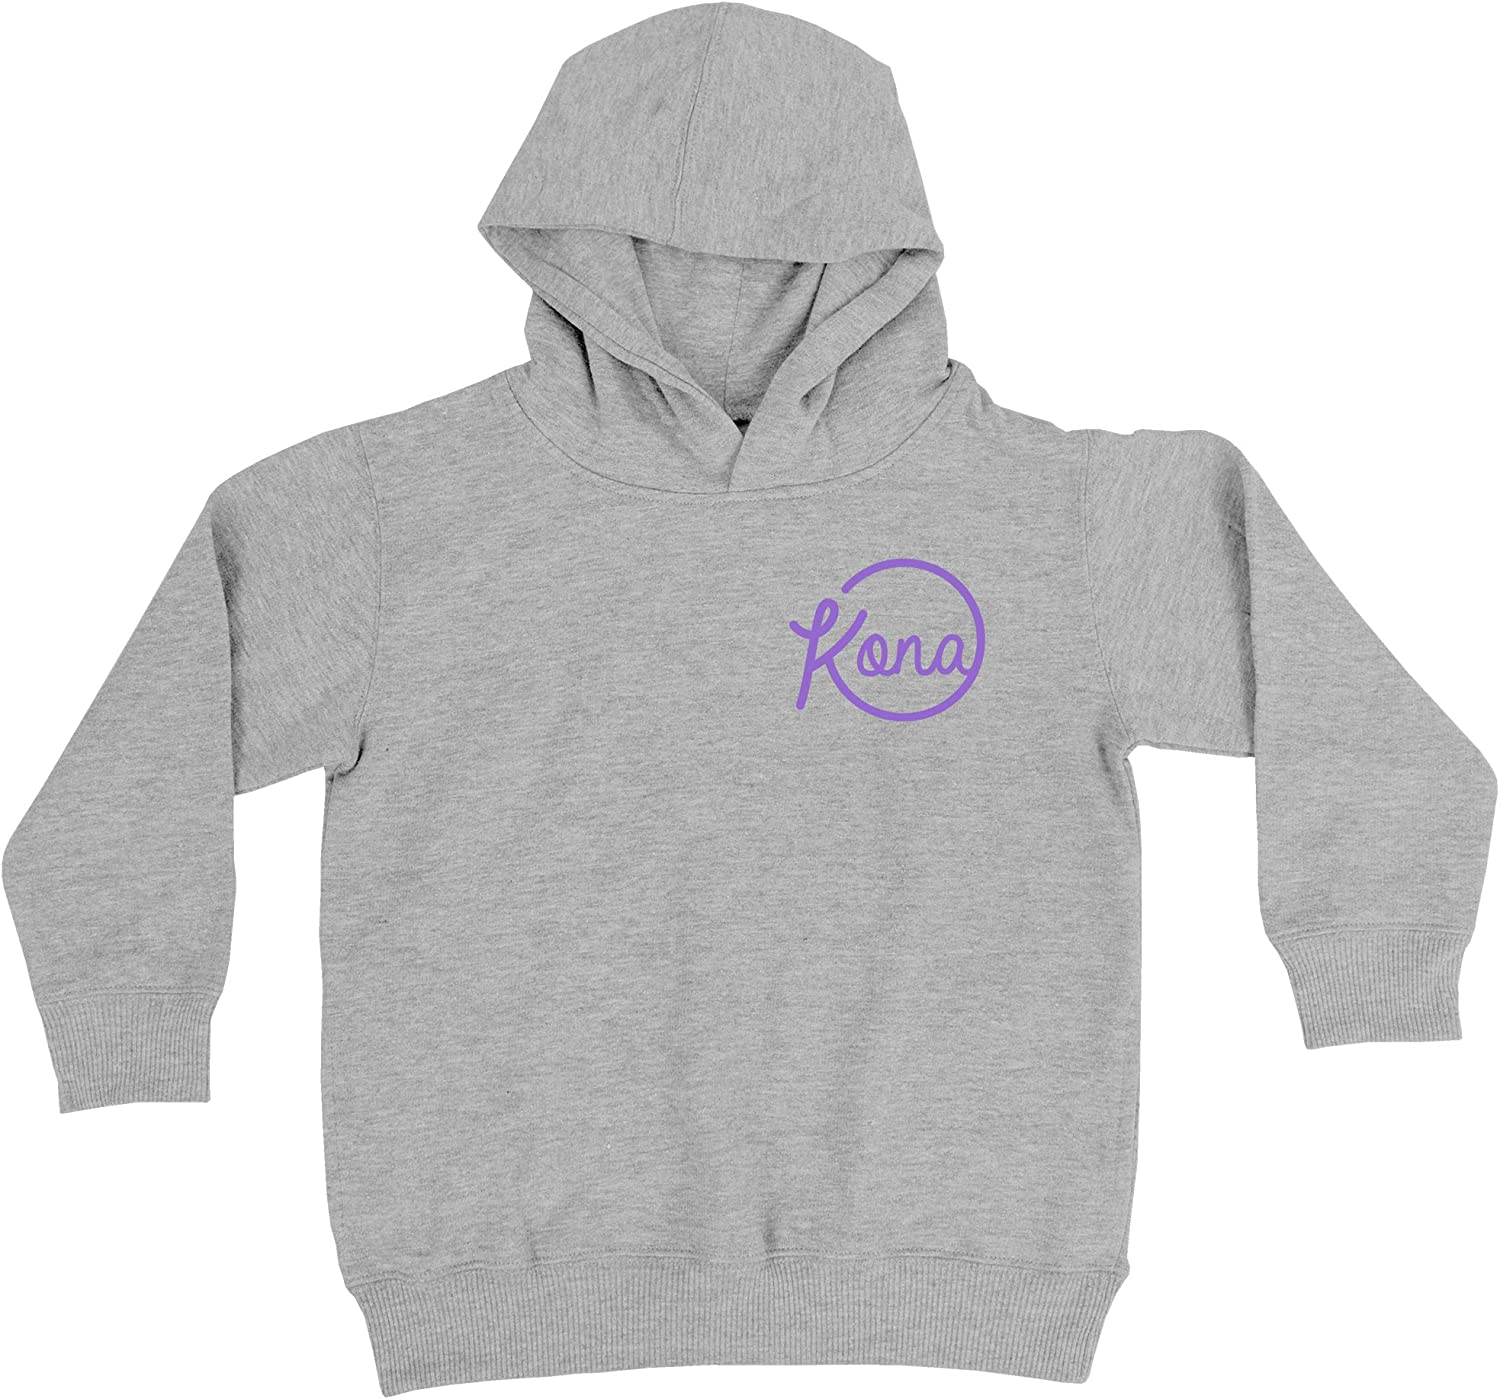 Roundabout Little Girls Pullover Hoodie KONA SURF CO